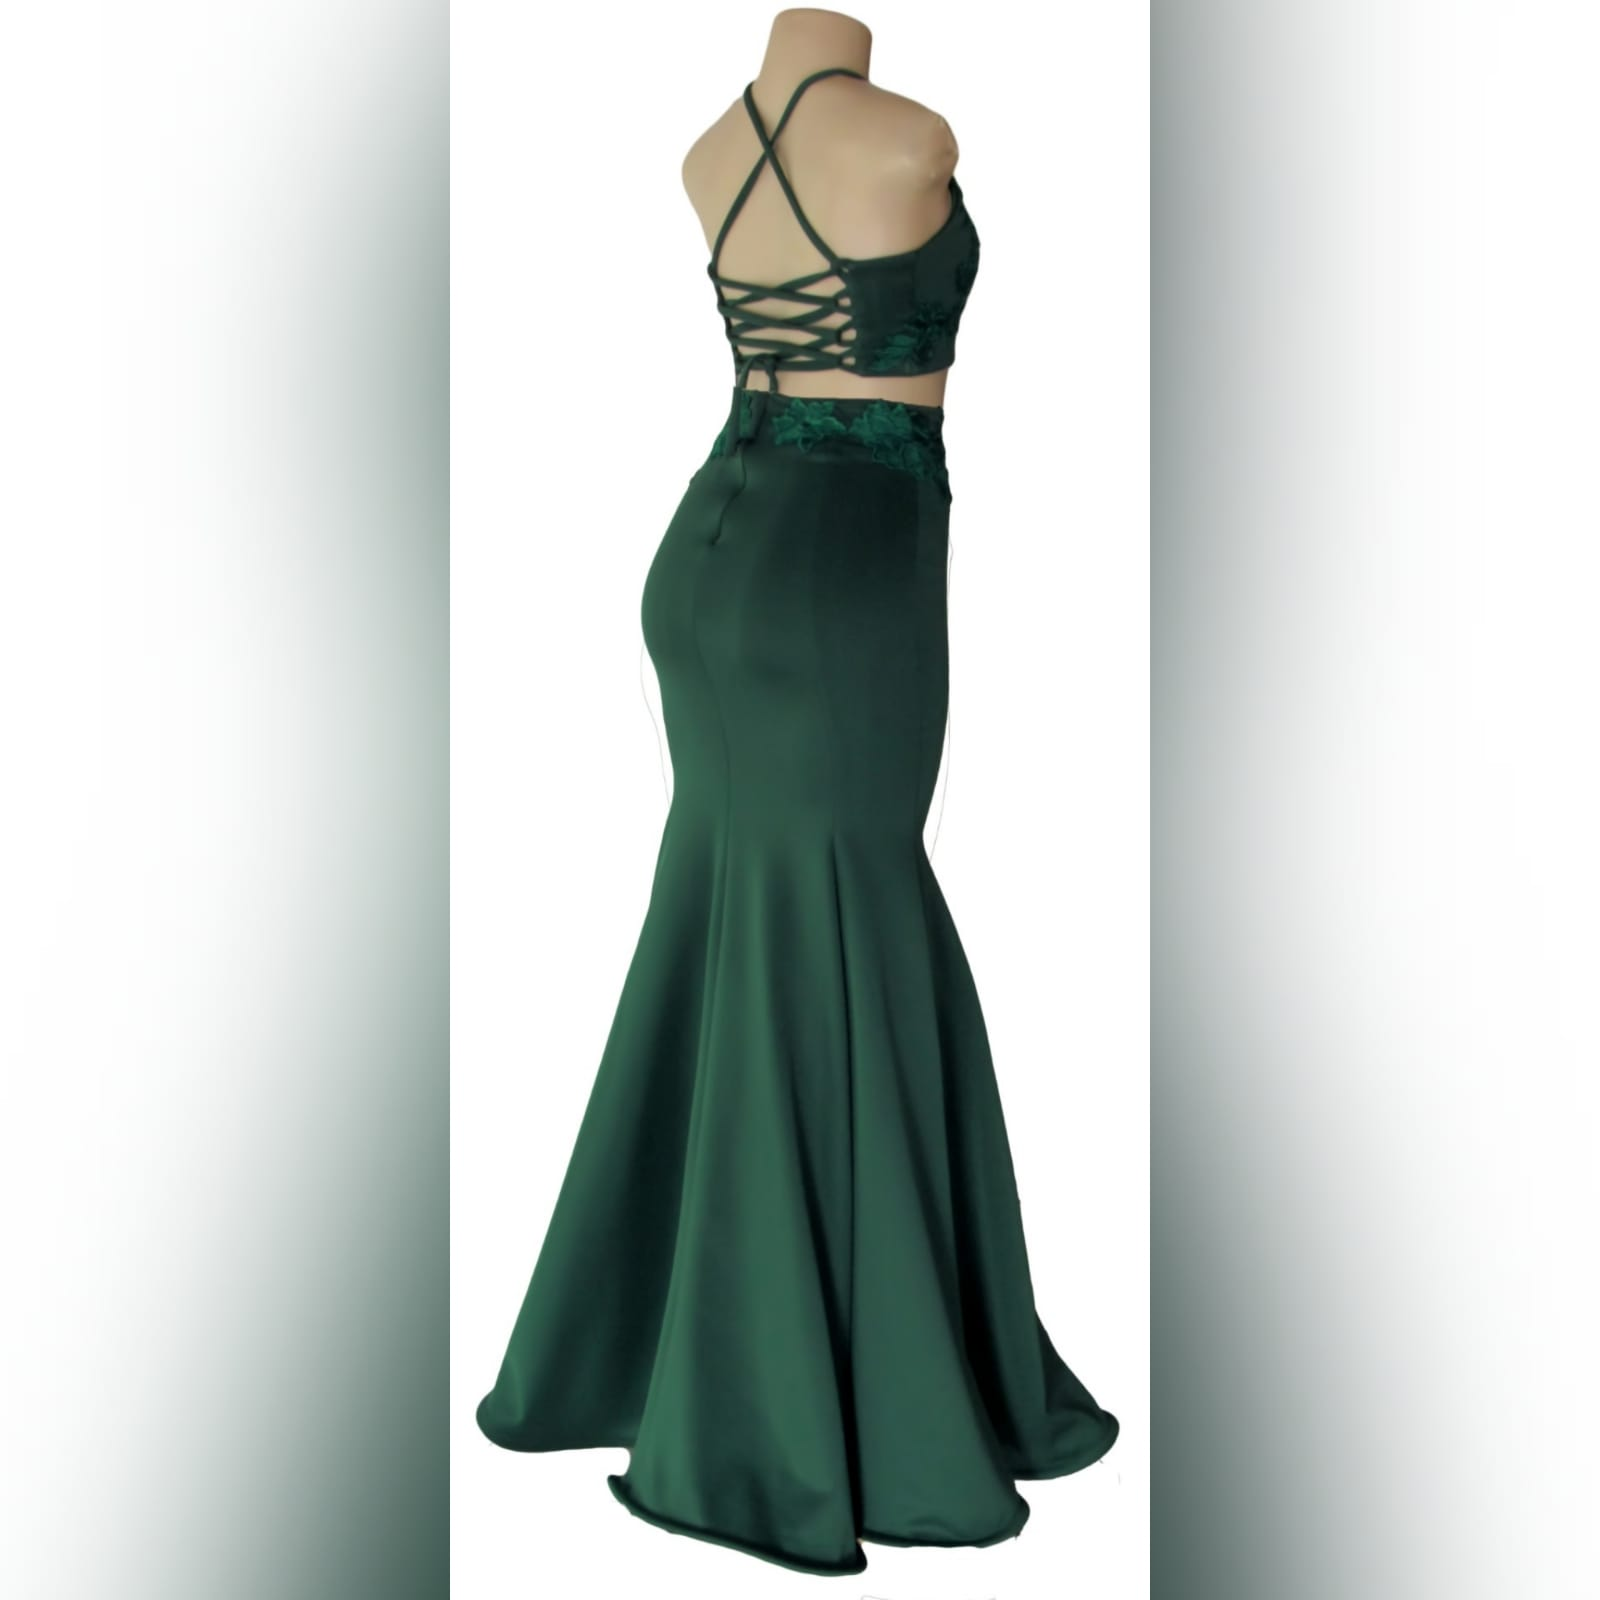 2 piece emerald green mermaid prom dress 3 2 piece emerald green mermaid prom dress. A gorgeous crop top with a lace-up open back, with a mermaid skirt. Lace detail on skirt and top for a classic touch.